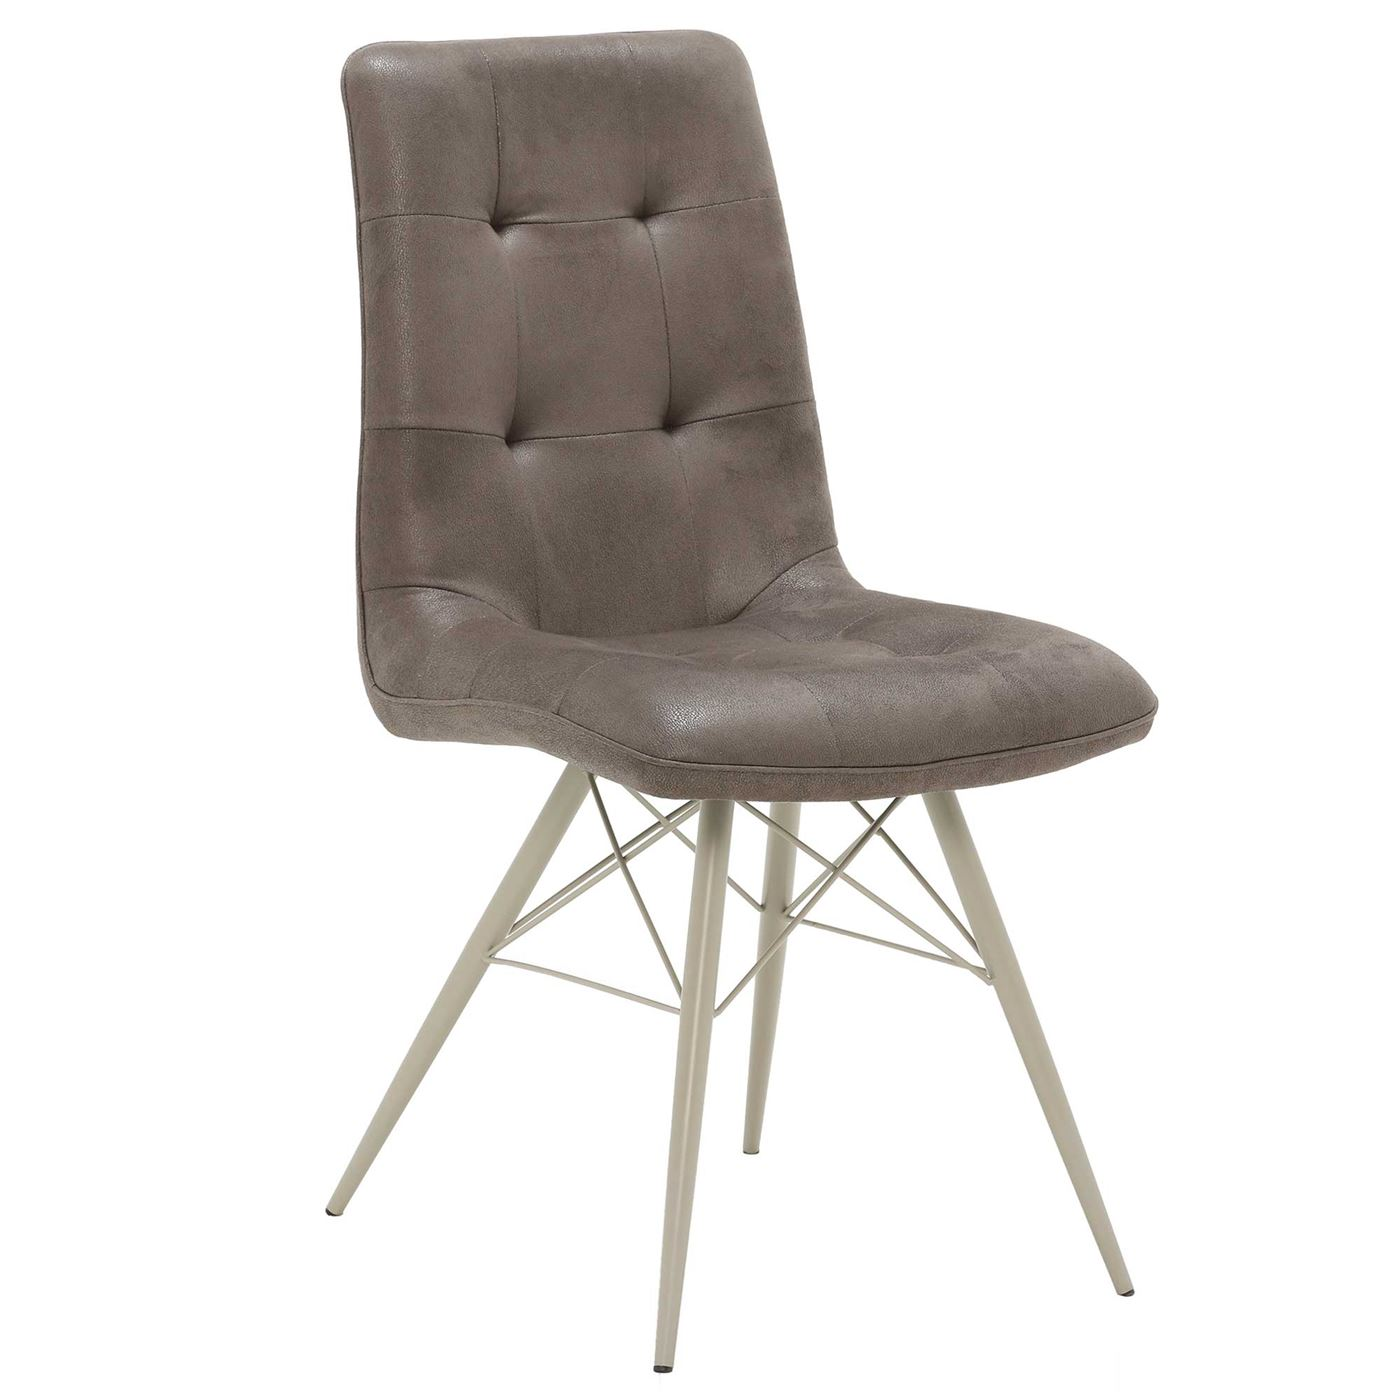 Hix Upholstered Dining Chair, Grey